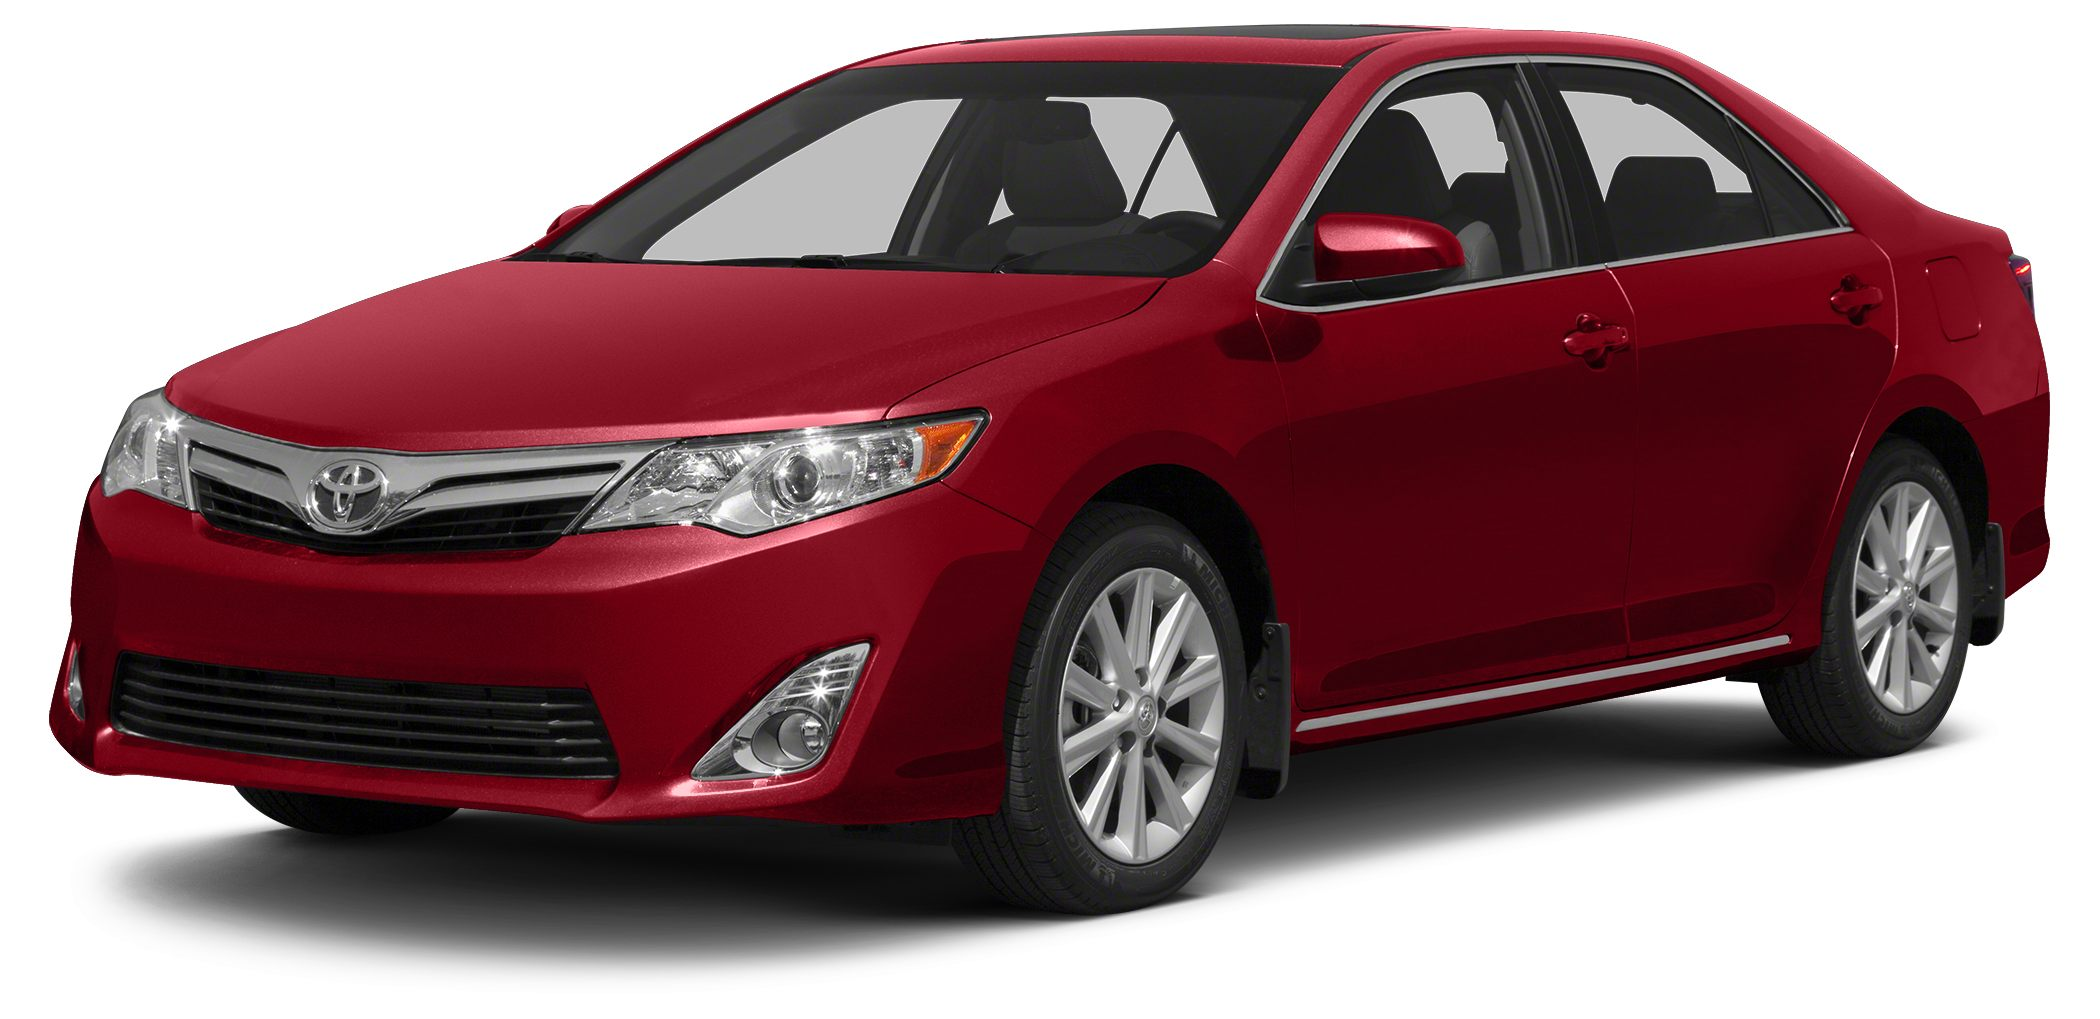 2013 Toyota Camry XLE CARFAX 1-Owner ONLY 28477 Miles XLE trim BARCELONA RED METALLIC exterior